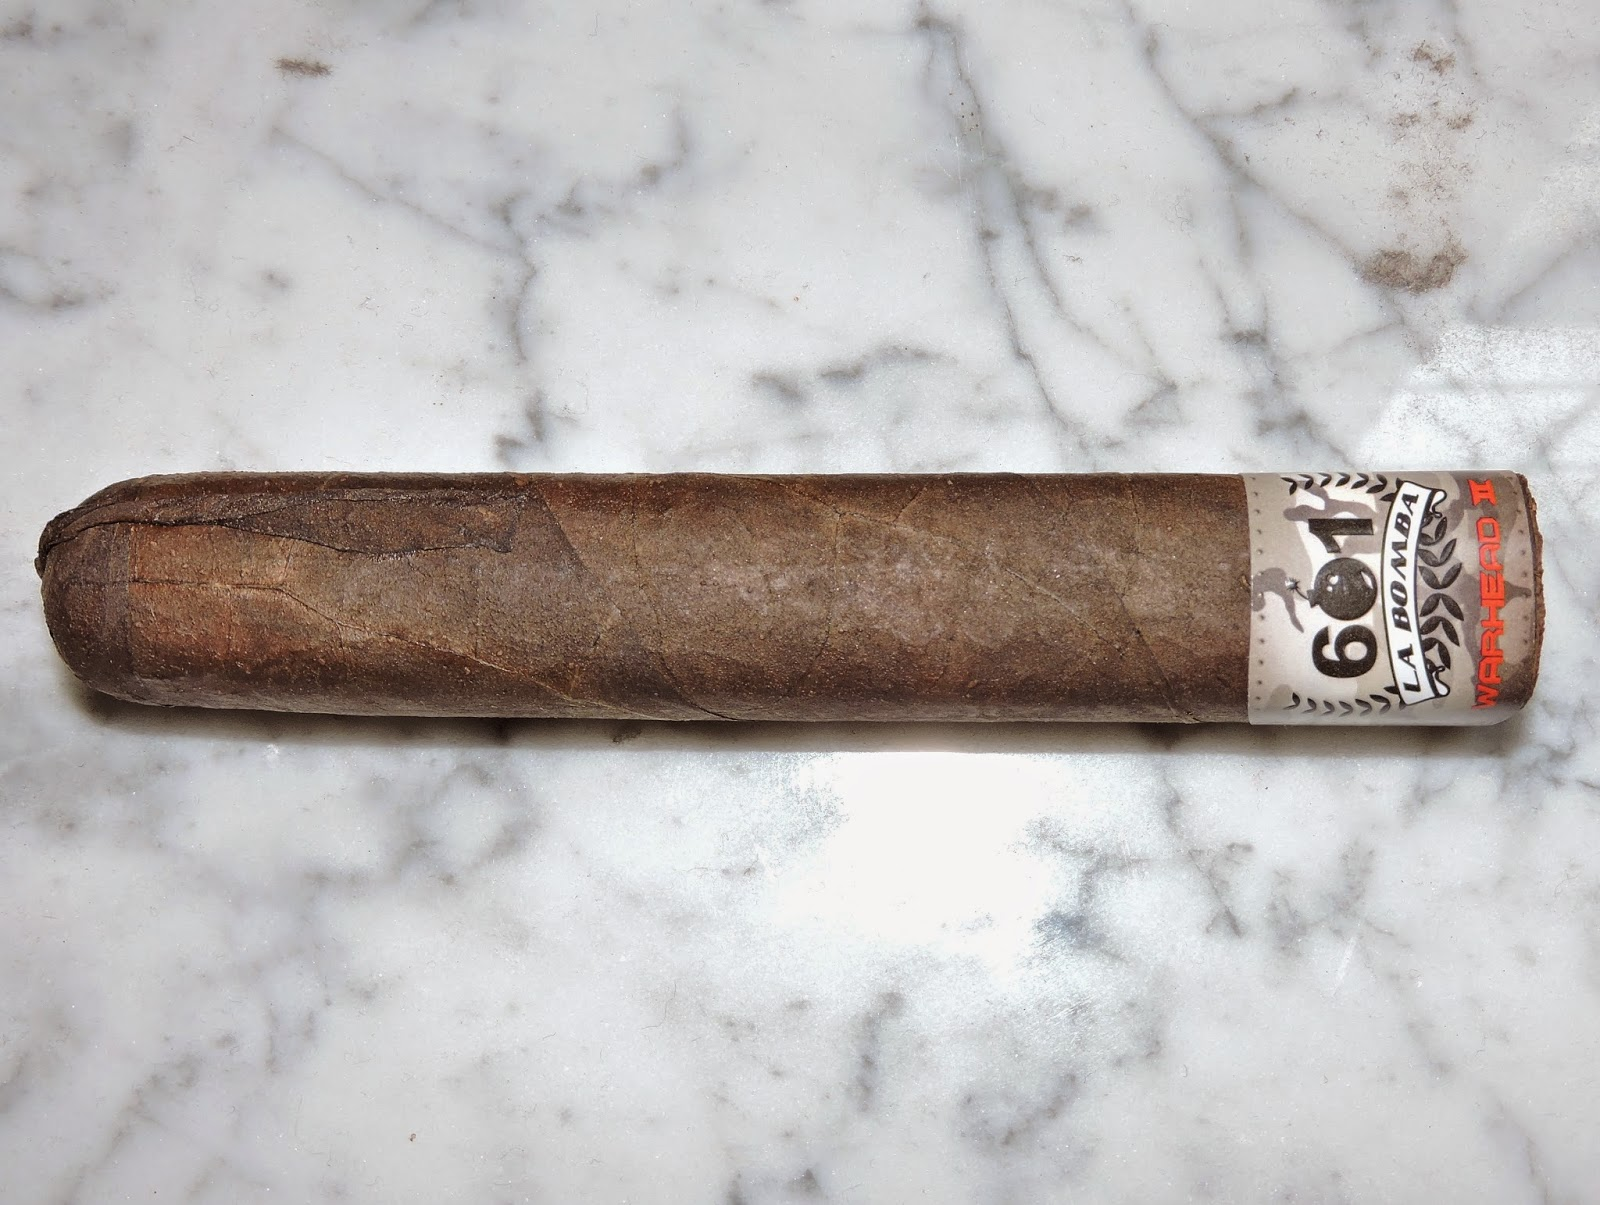 Cigar Review: 601 La Bomba Warhead II by Espinosa Cigars